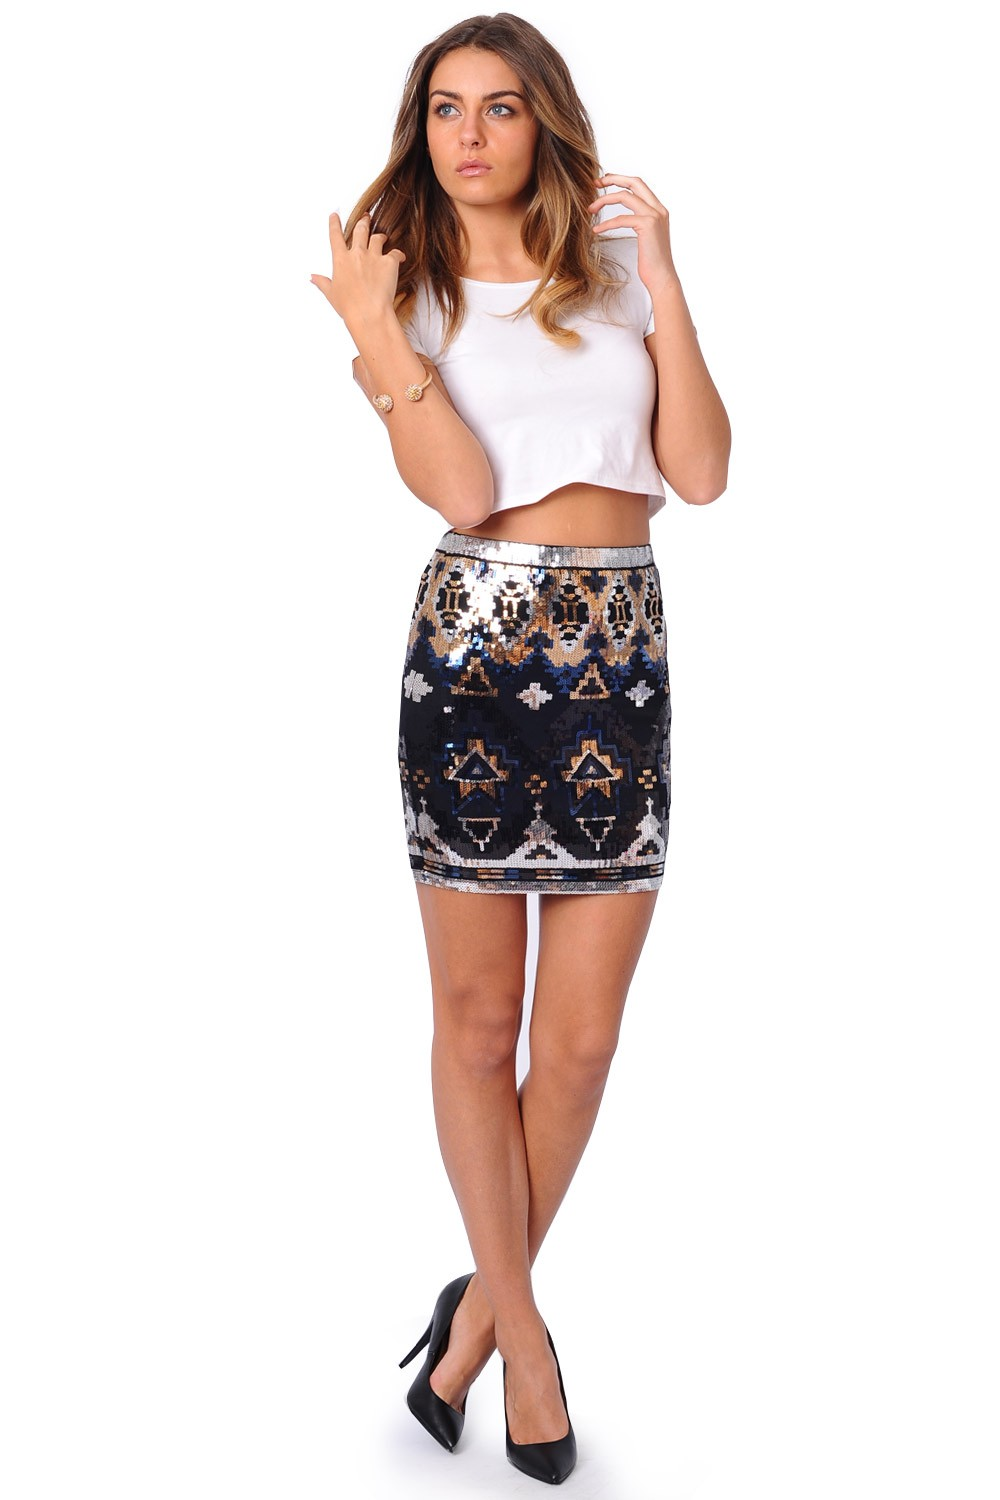 Sequins can decorate mini skirts, mid-length skirts, mid-calf length skirts and maxi skirts. Thusly, the selection of fabrics are vast, because with a flowing, looser style cheap sequin skirt, you have the opportunity to use lighter weight fabrics like % cotton, rayon, chiffon, linen, satin, silk, wool and tweed.